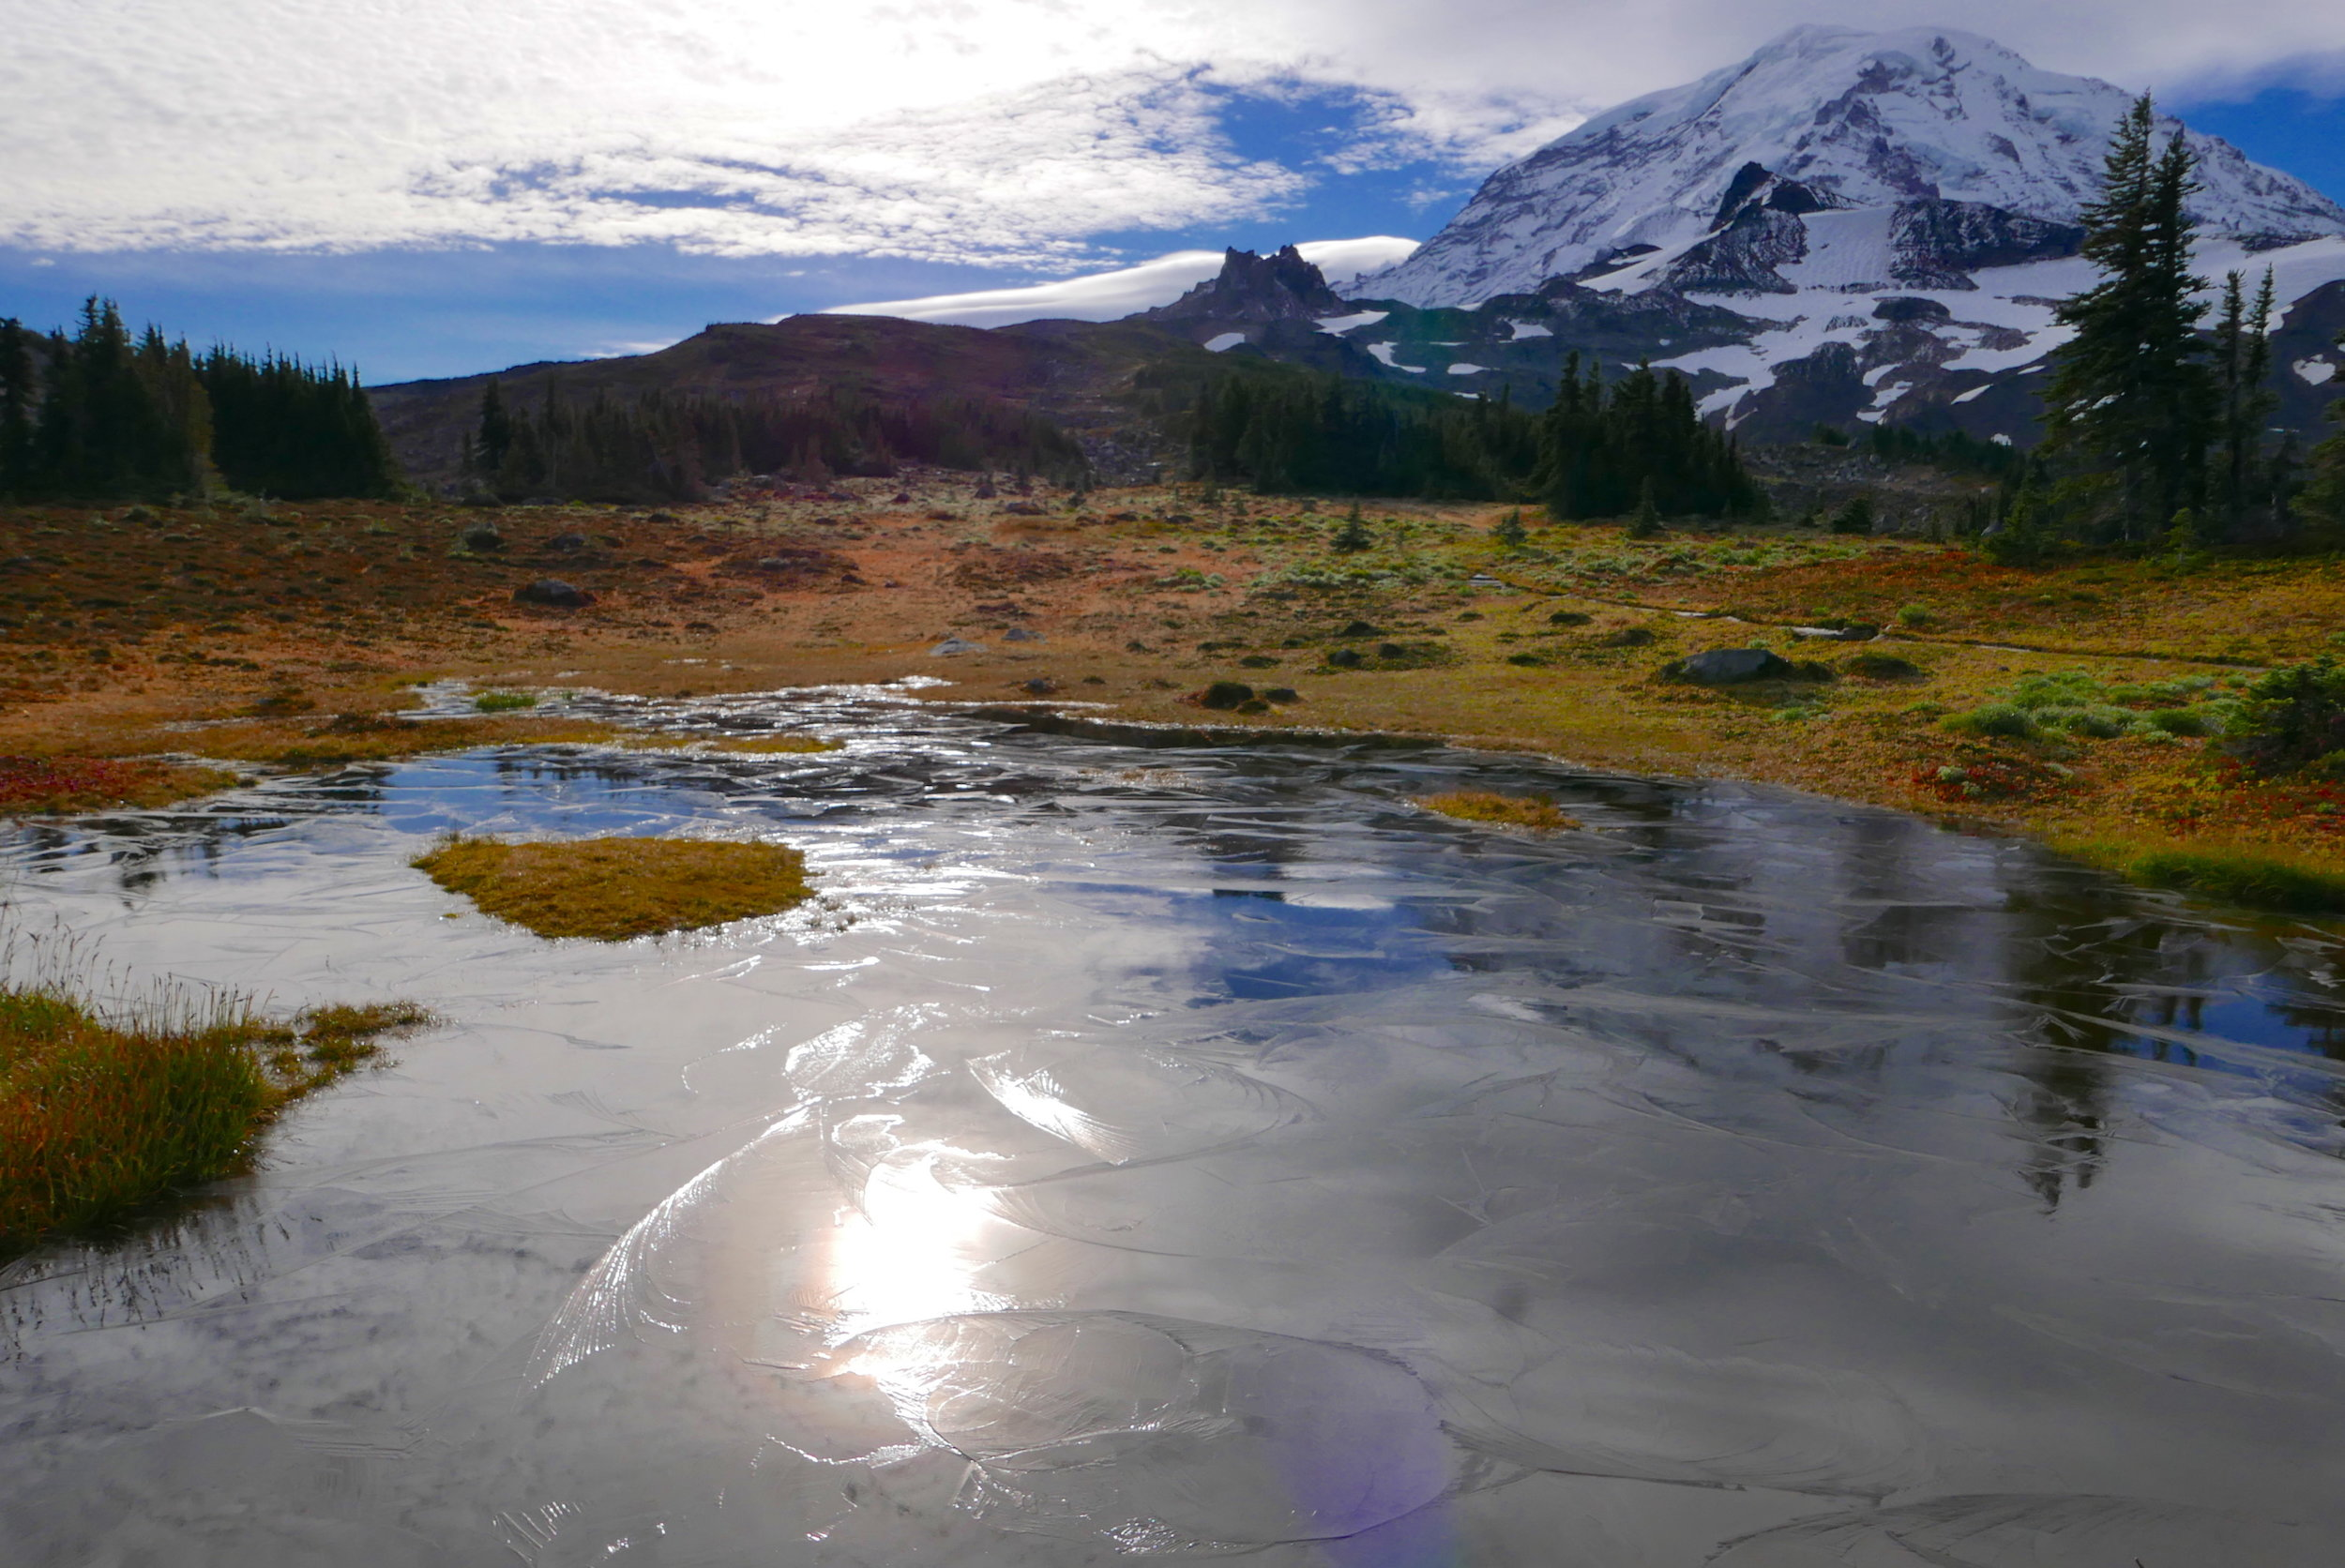 frozen tarn in Spray Park, looking at Echo and Observation Rocks